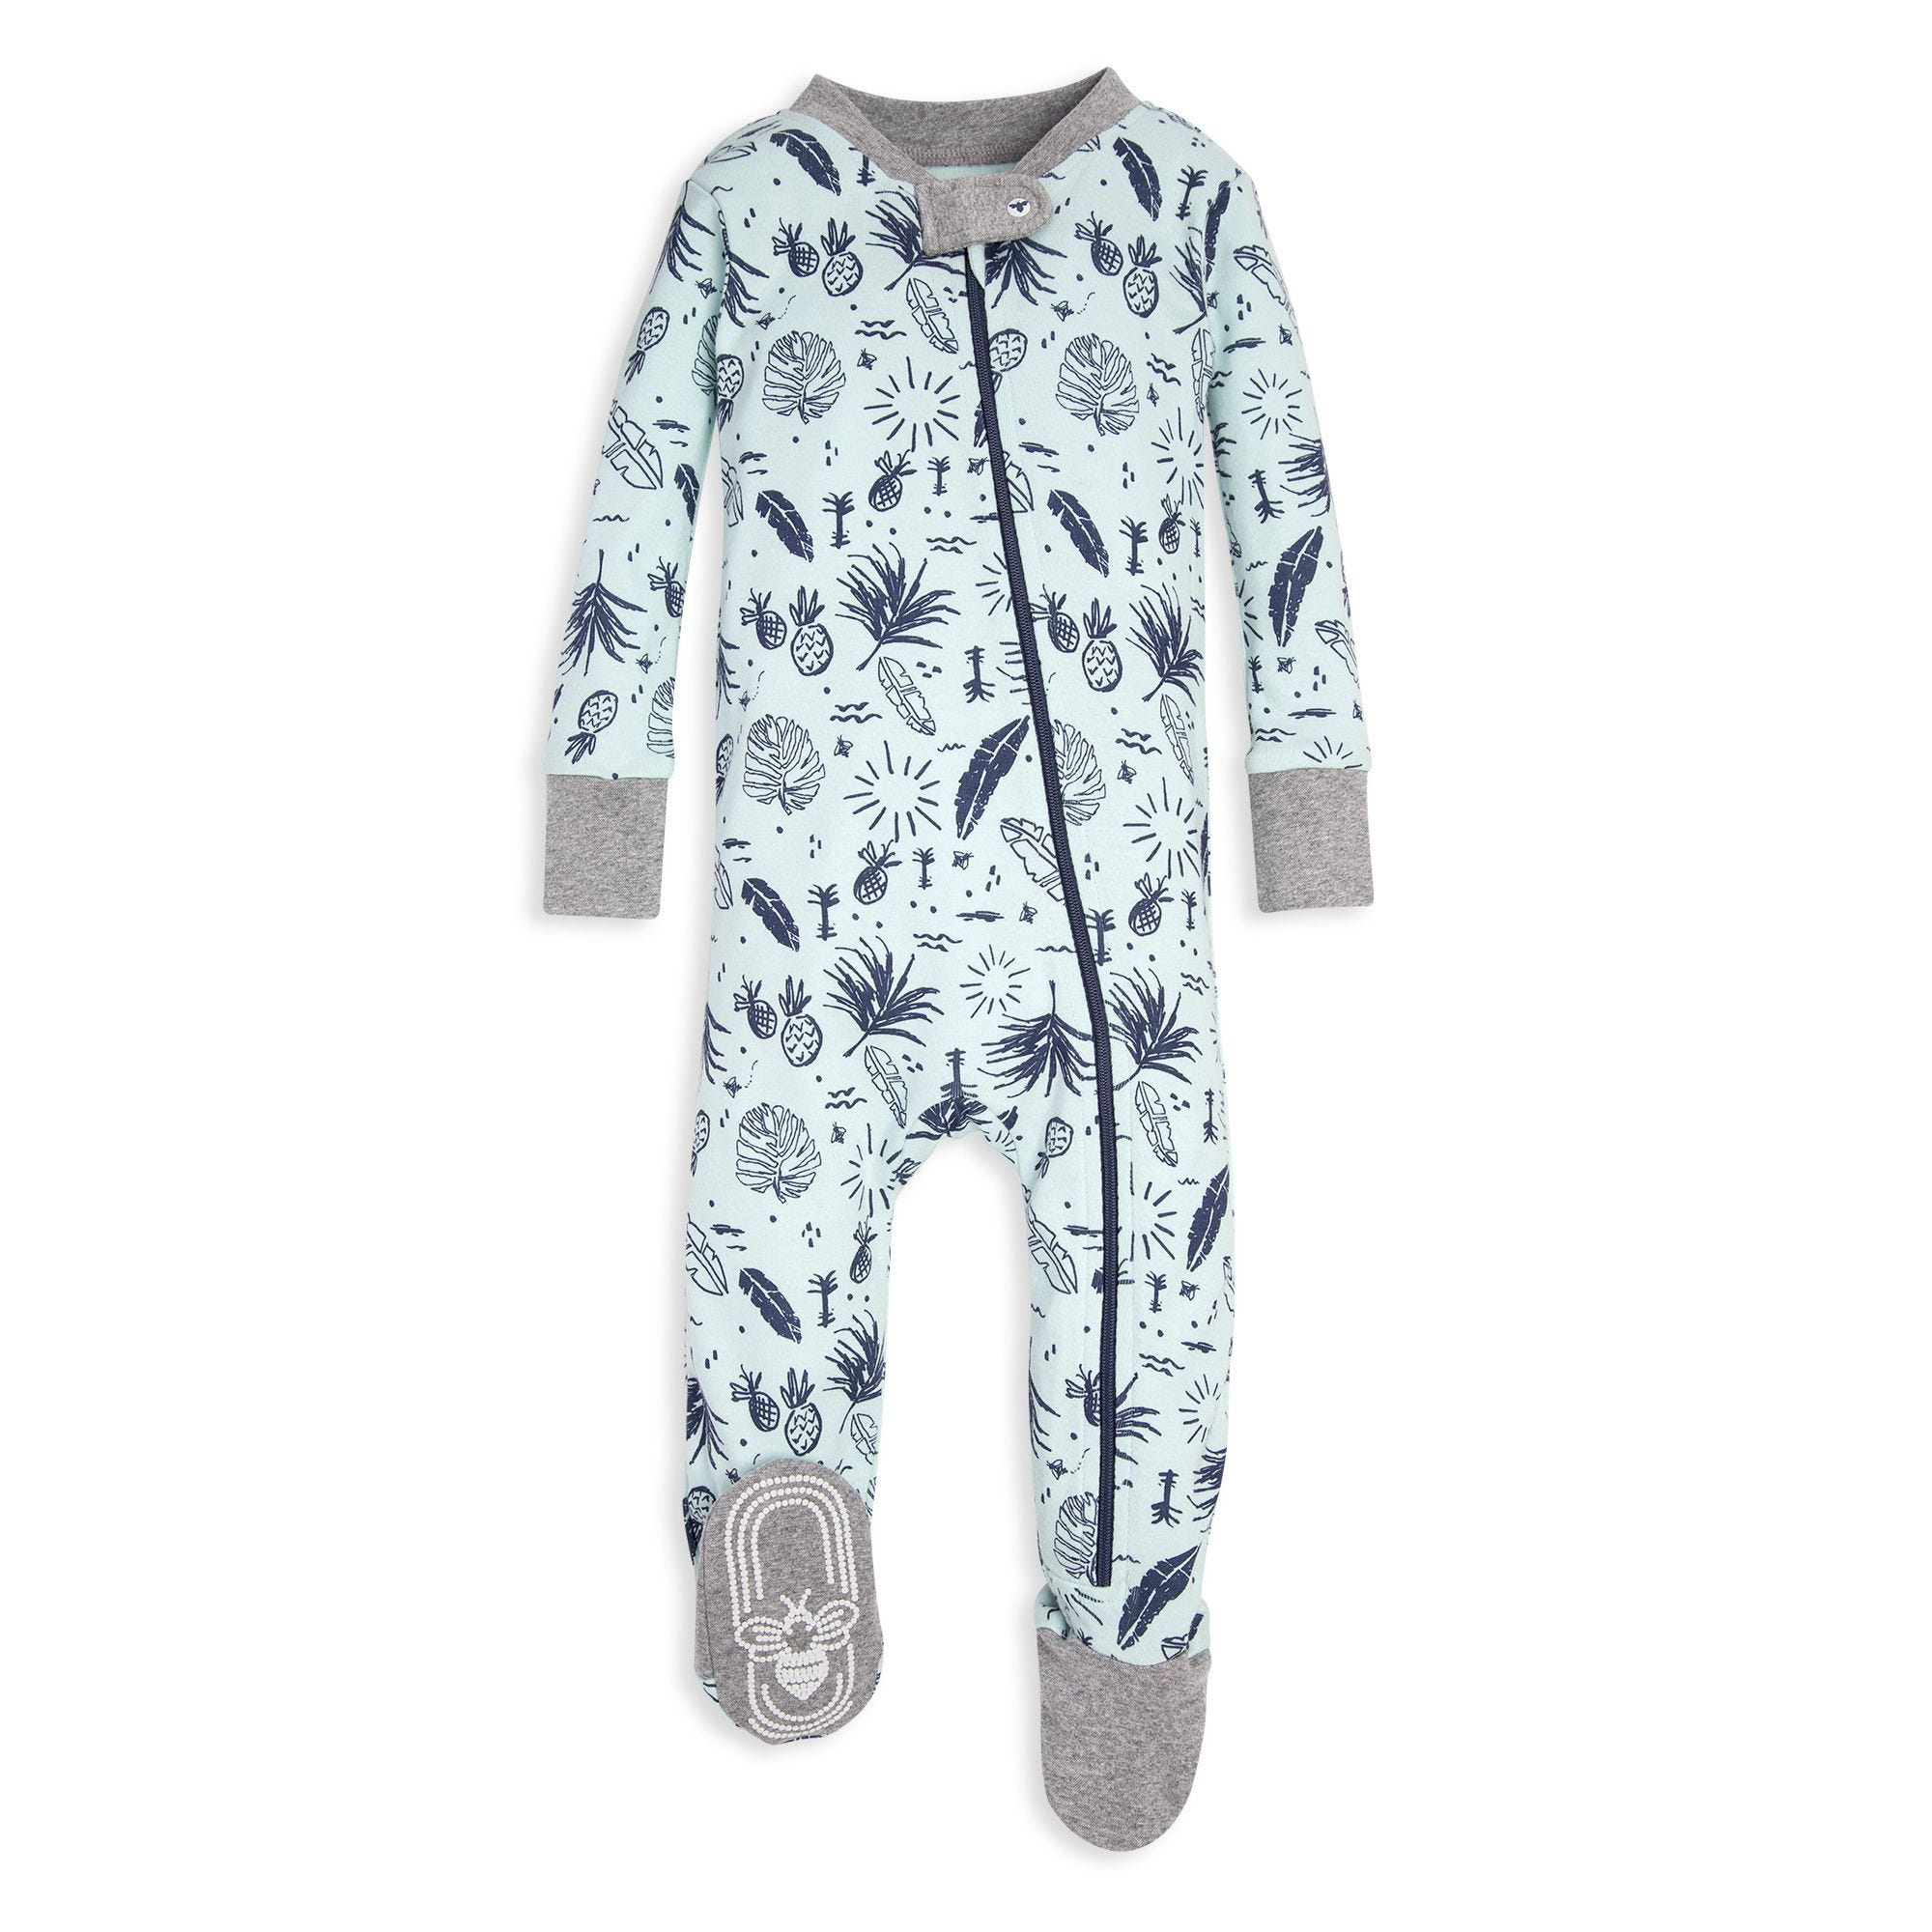 69daeb86169c Tropical Plants Print Organic Baby Zip Up Footed Pajamas